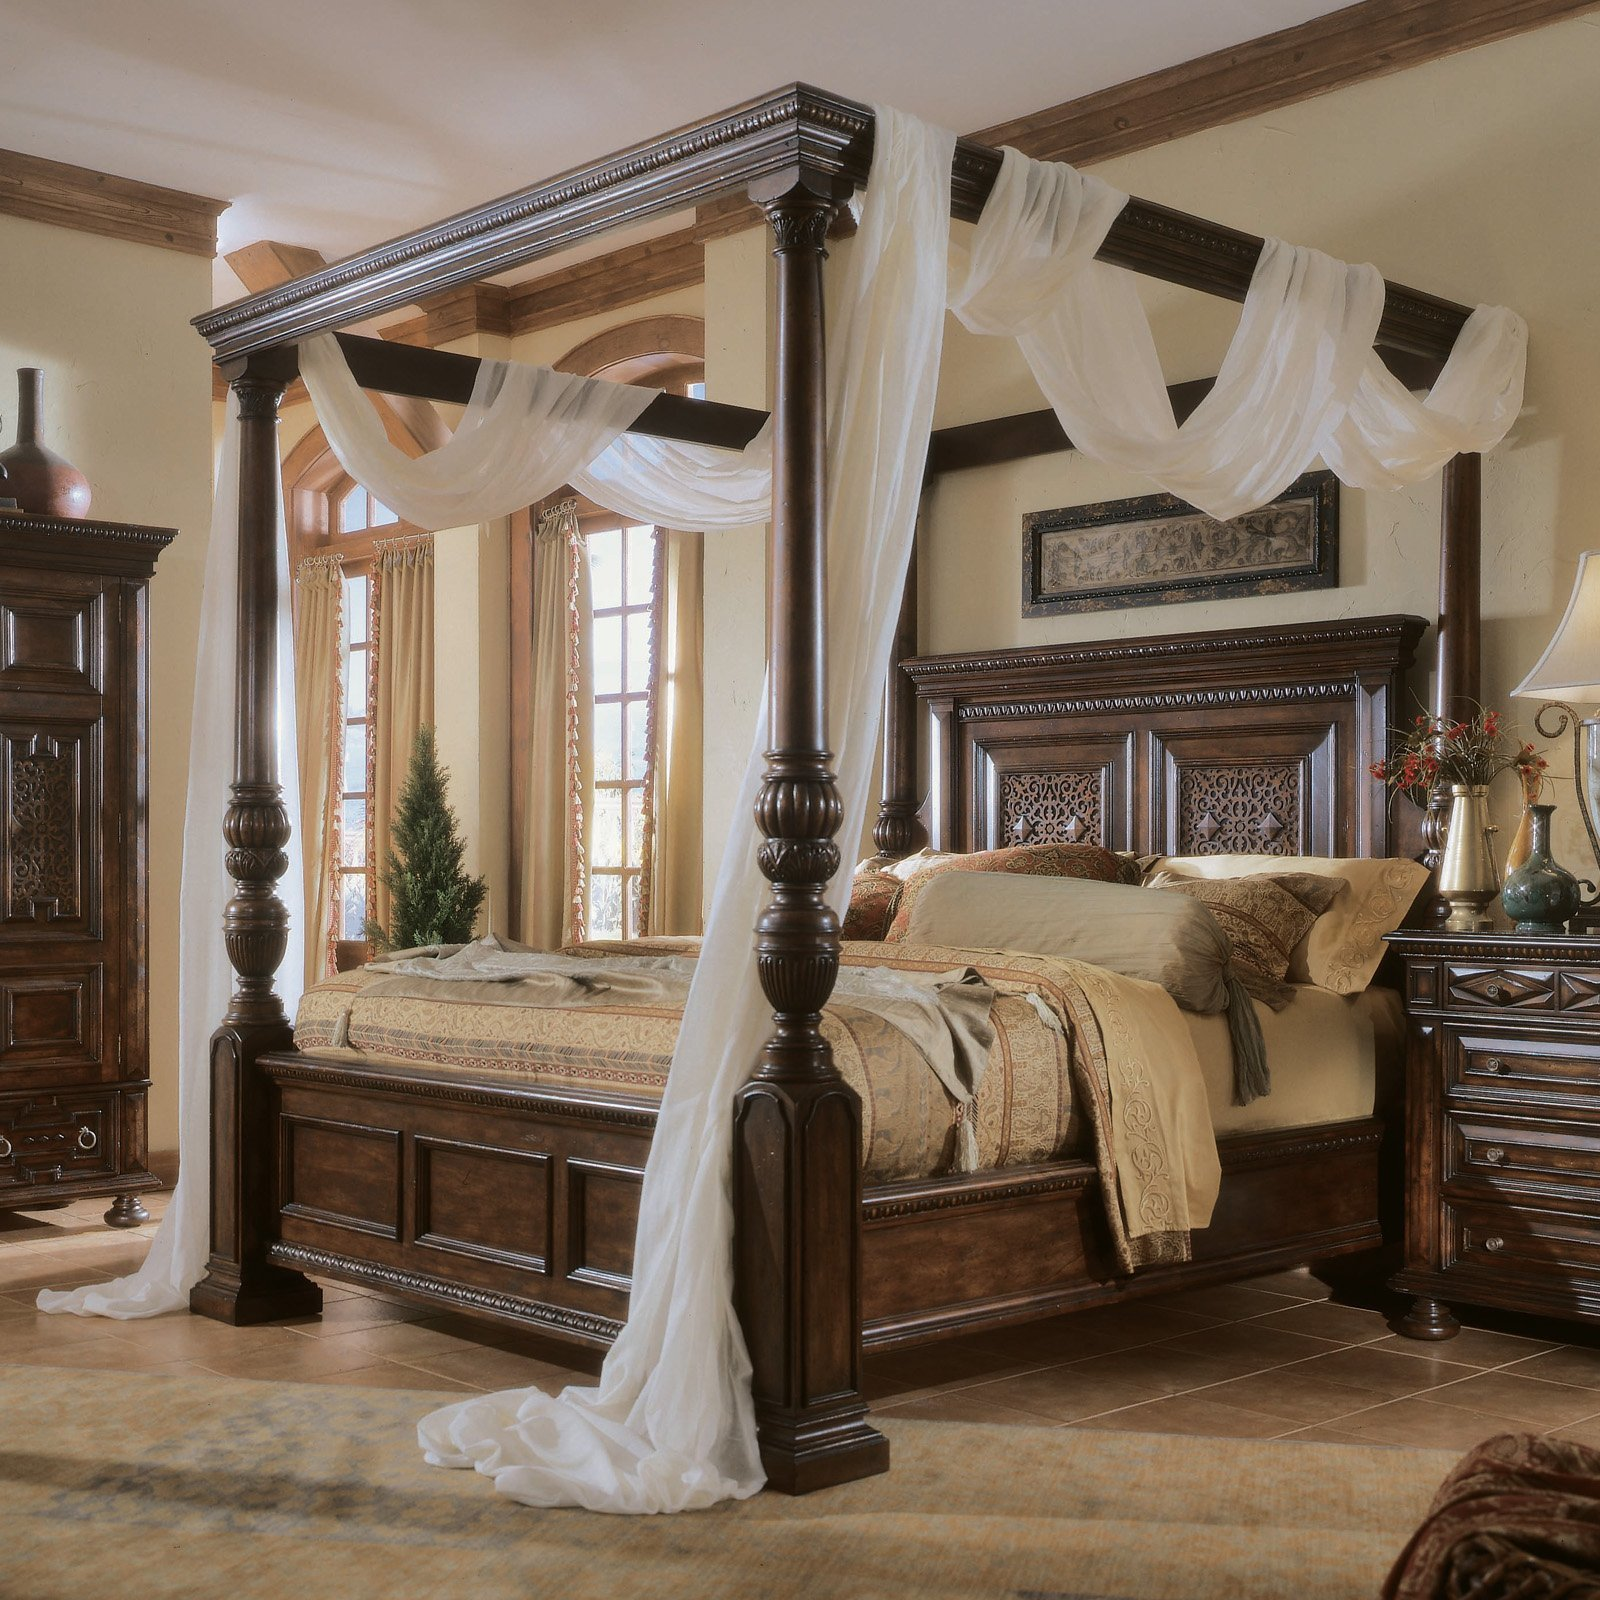 Best Interior Design Home Decor Furniture Furnishings With Pictures